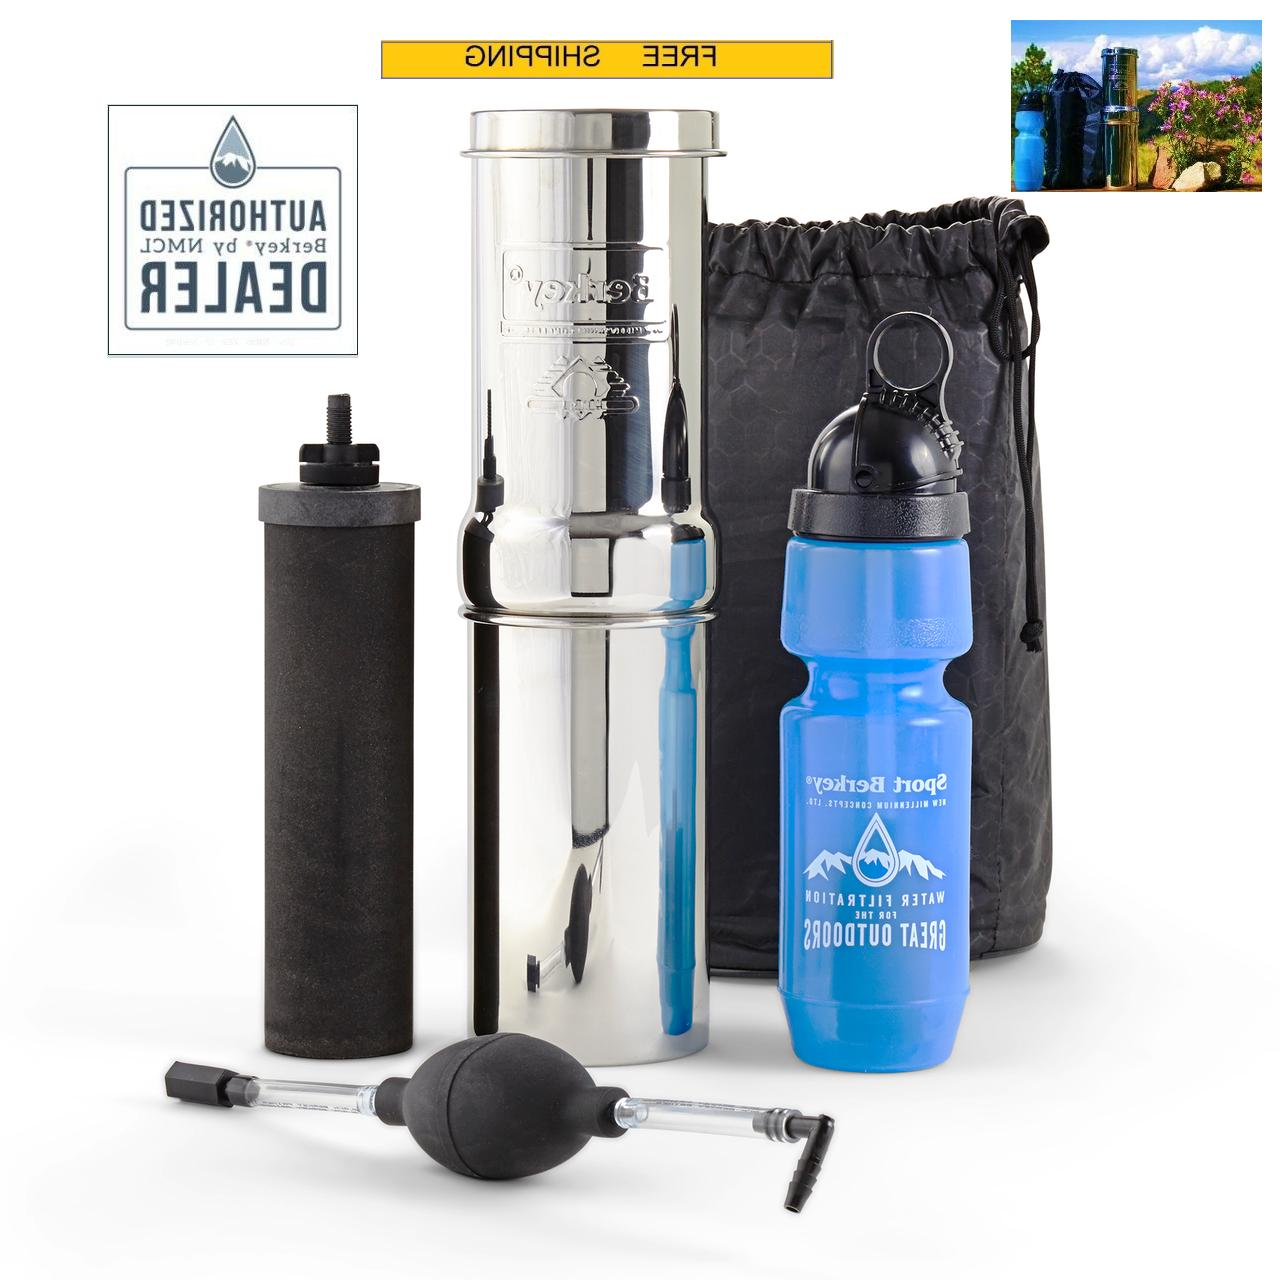 go water filter purifier kit